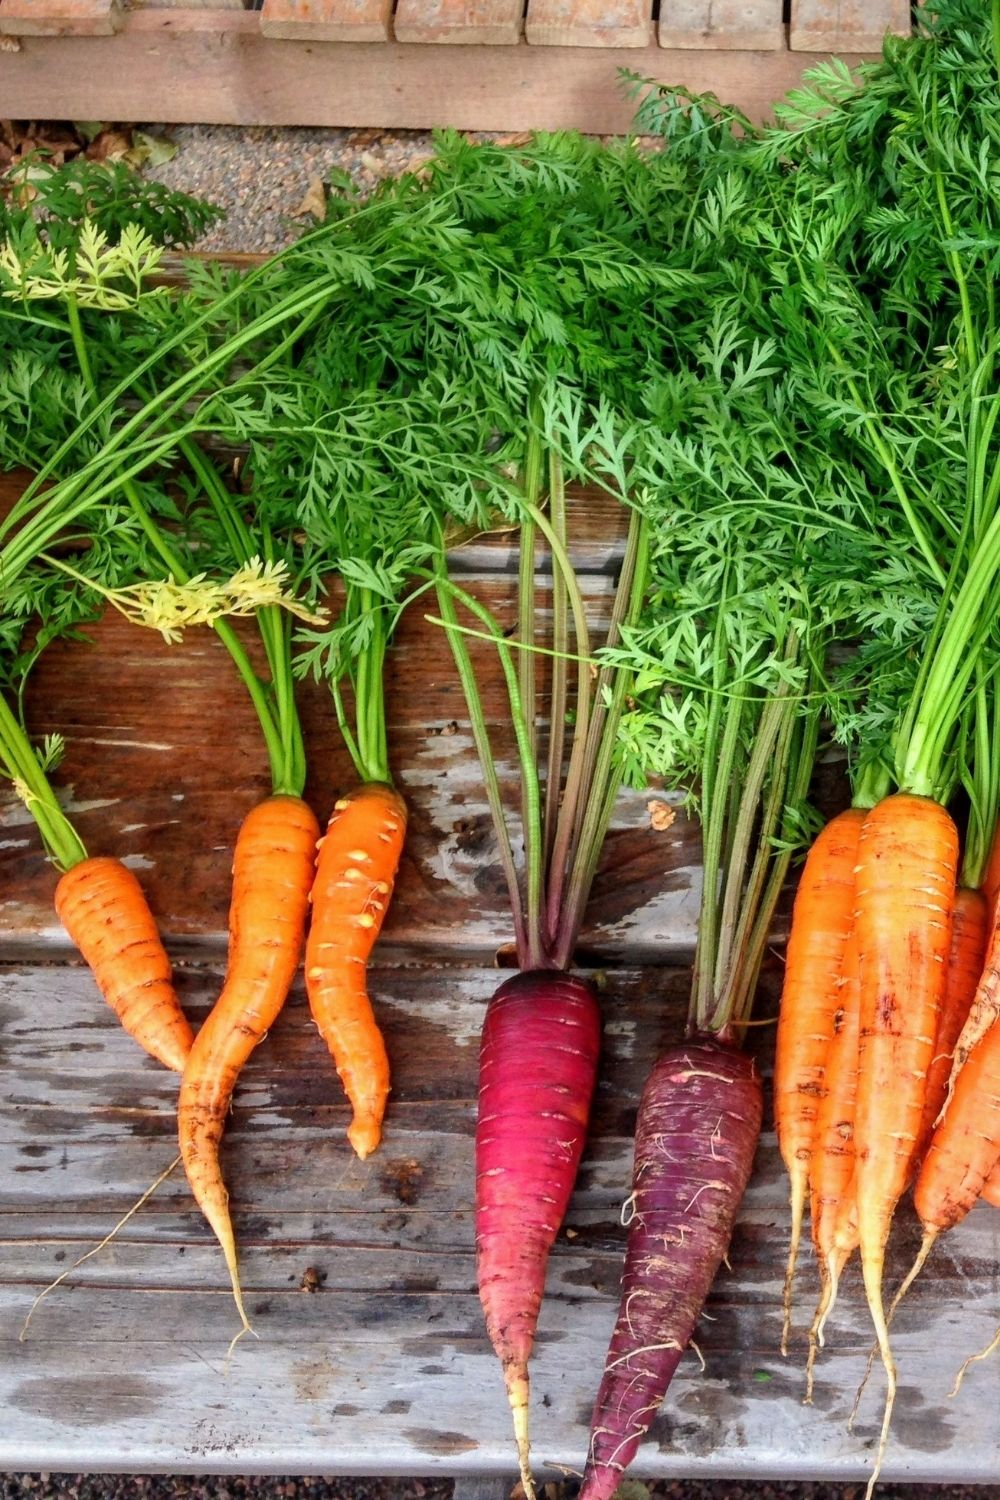 Several carrots on a wooden porch, including orange, red, and purple varieties